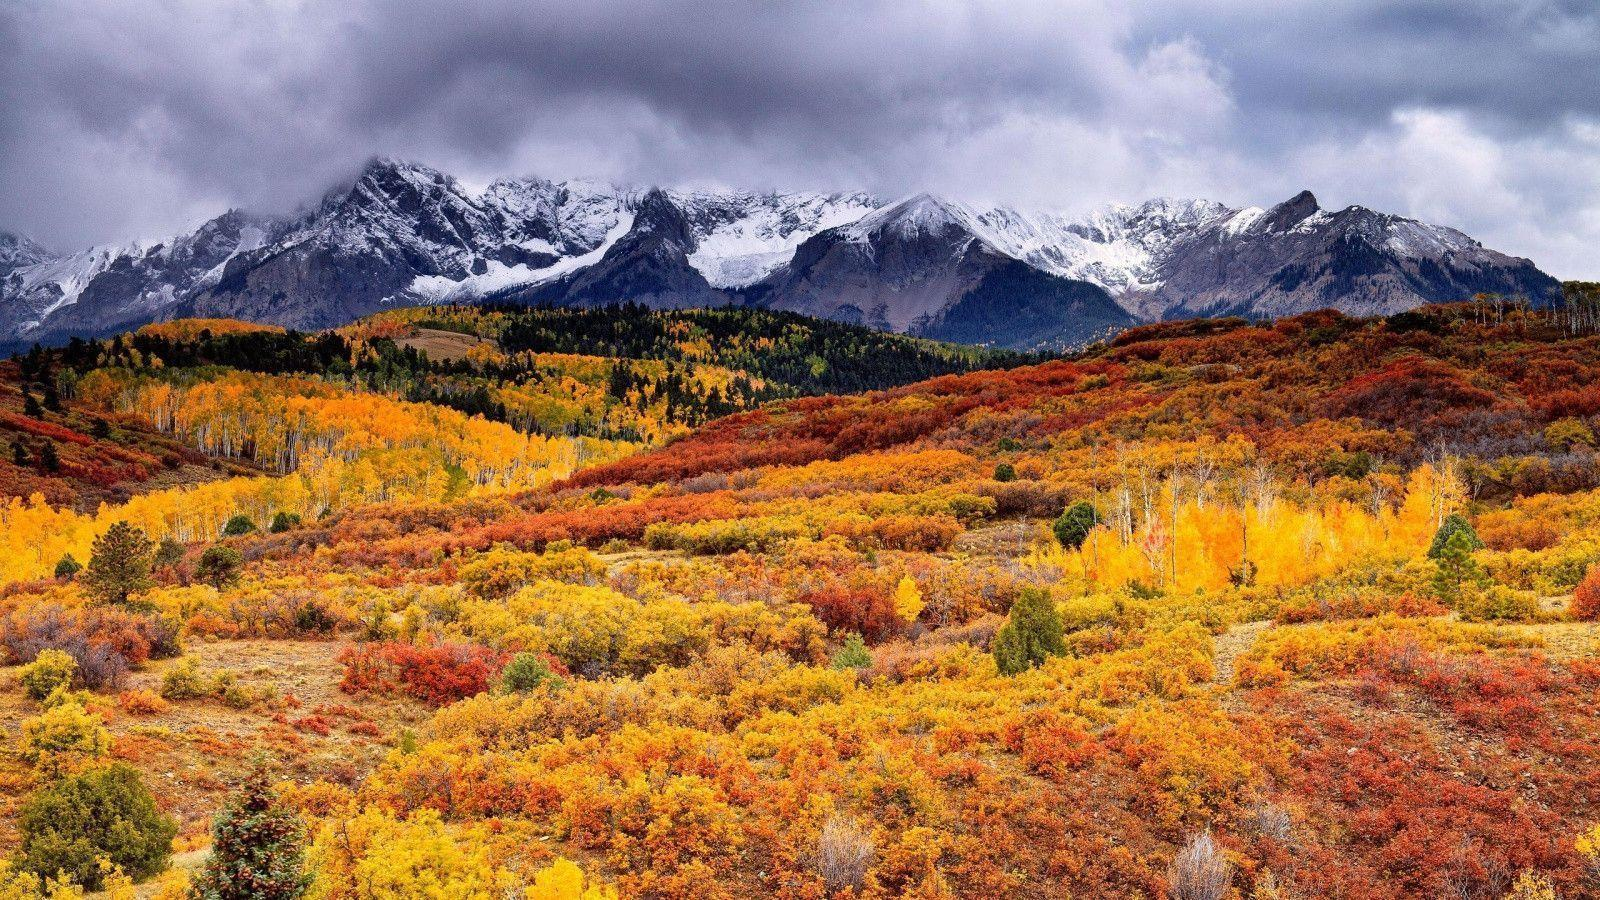 Wallpaper For Fall And Autumn Nature Wallpapers 1600x900 Wallpaper Cave